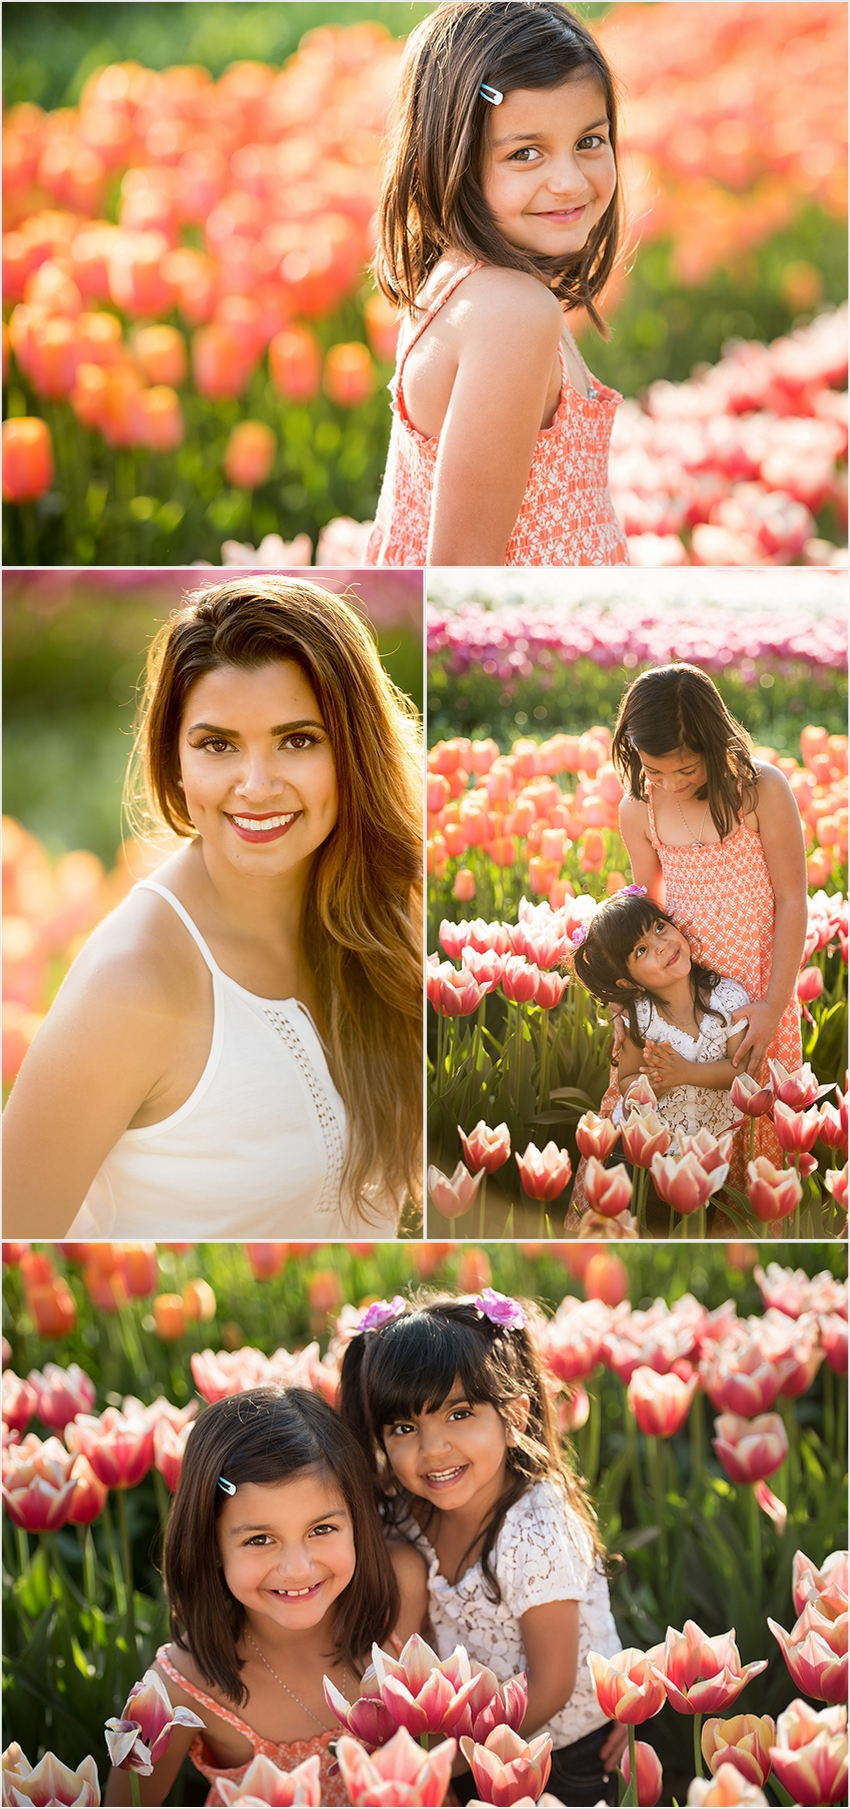 Sisters Abbotsford Family Children Photographer 002 (Side 2)